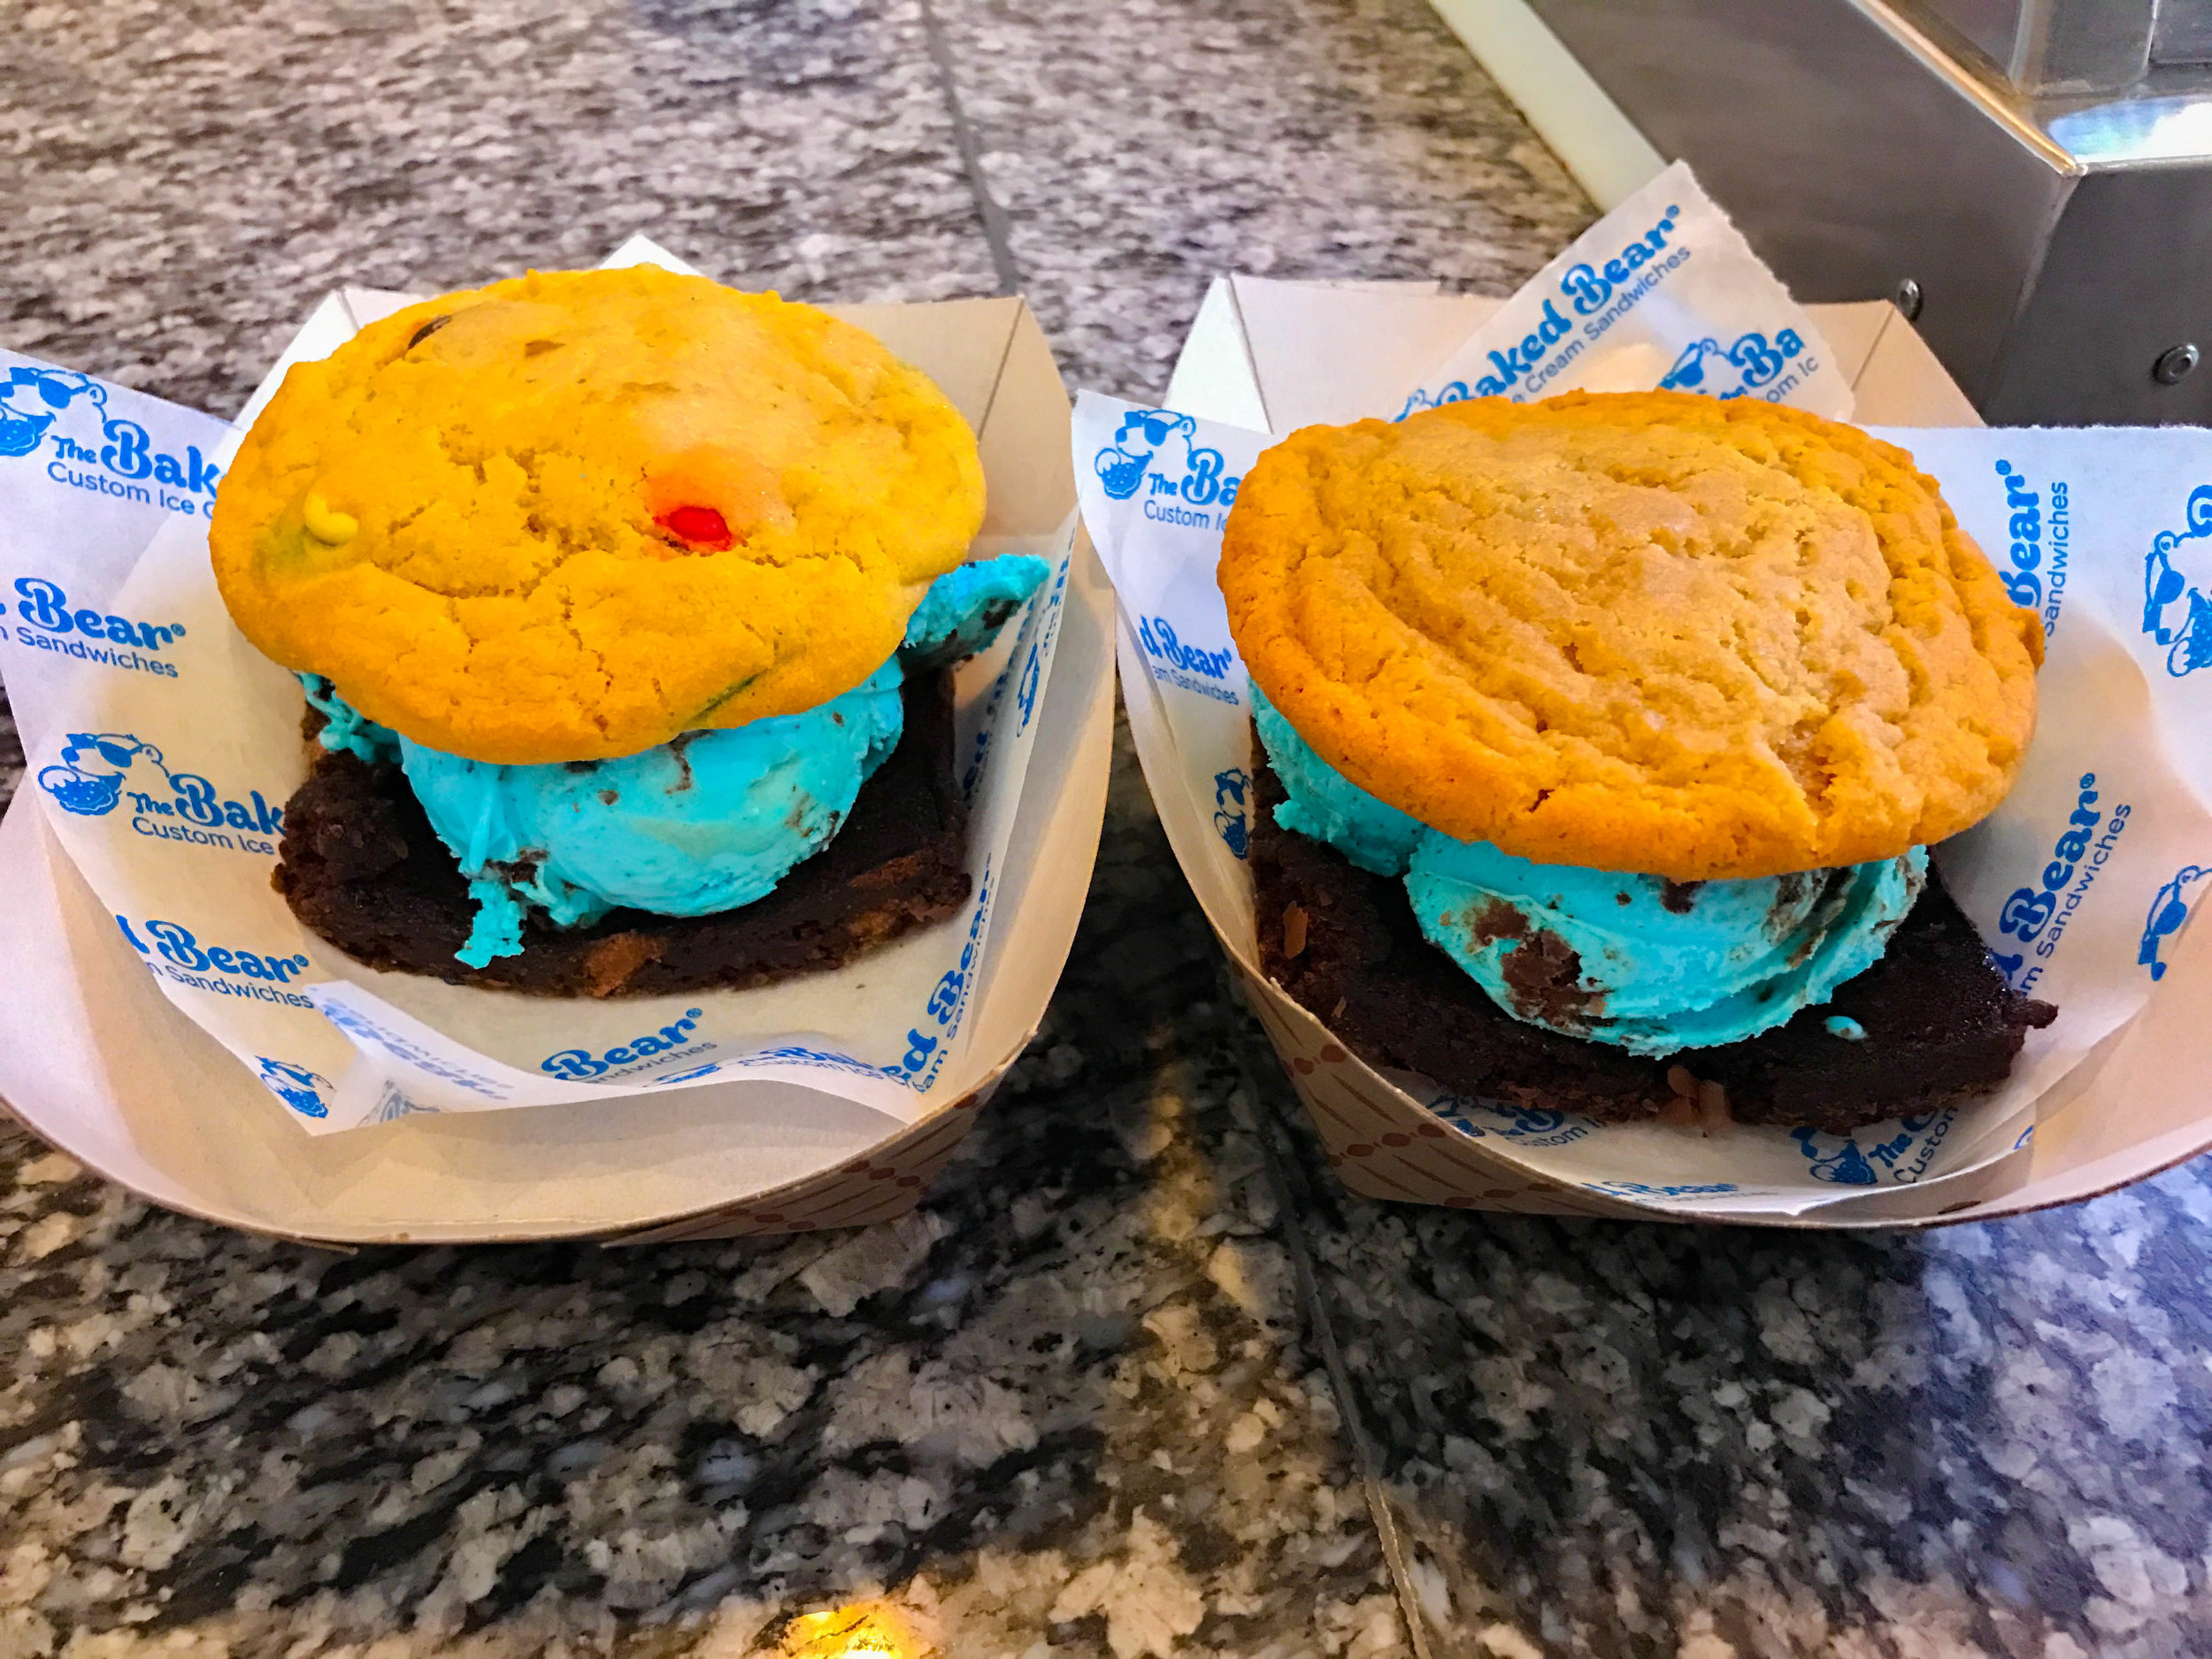 Ice Cream Sandwiches with blue cookie monster ice cream